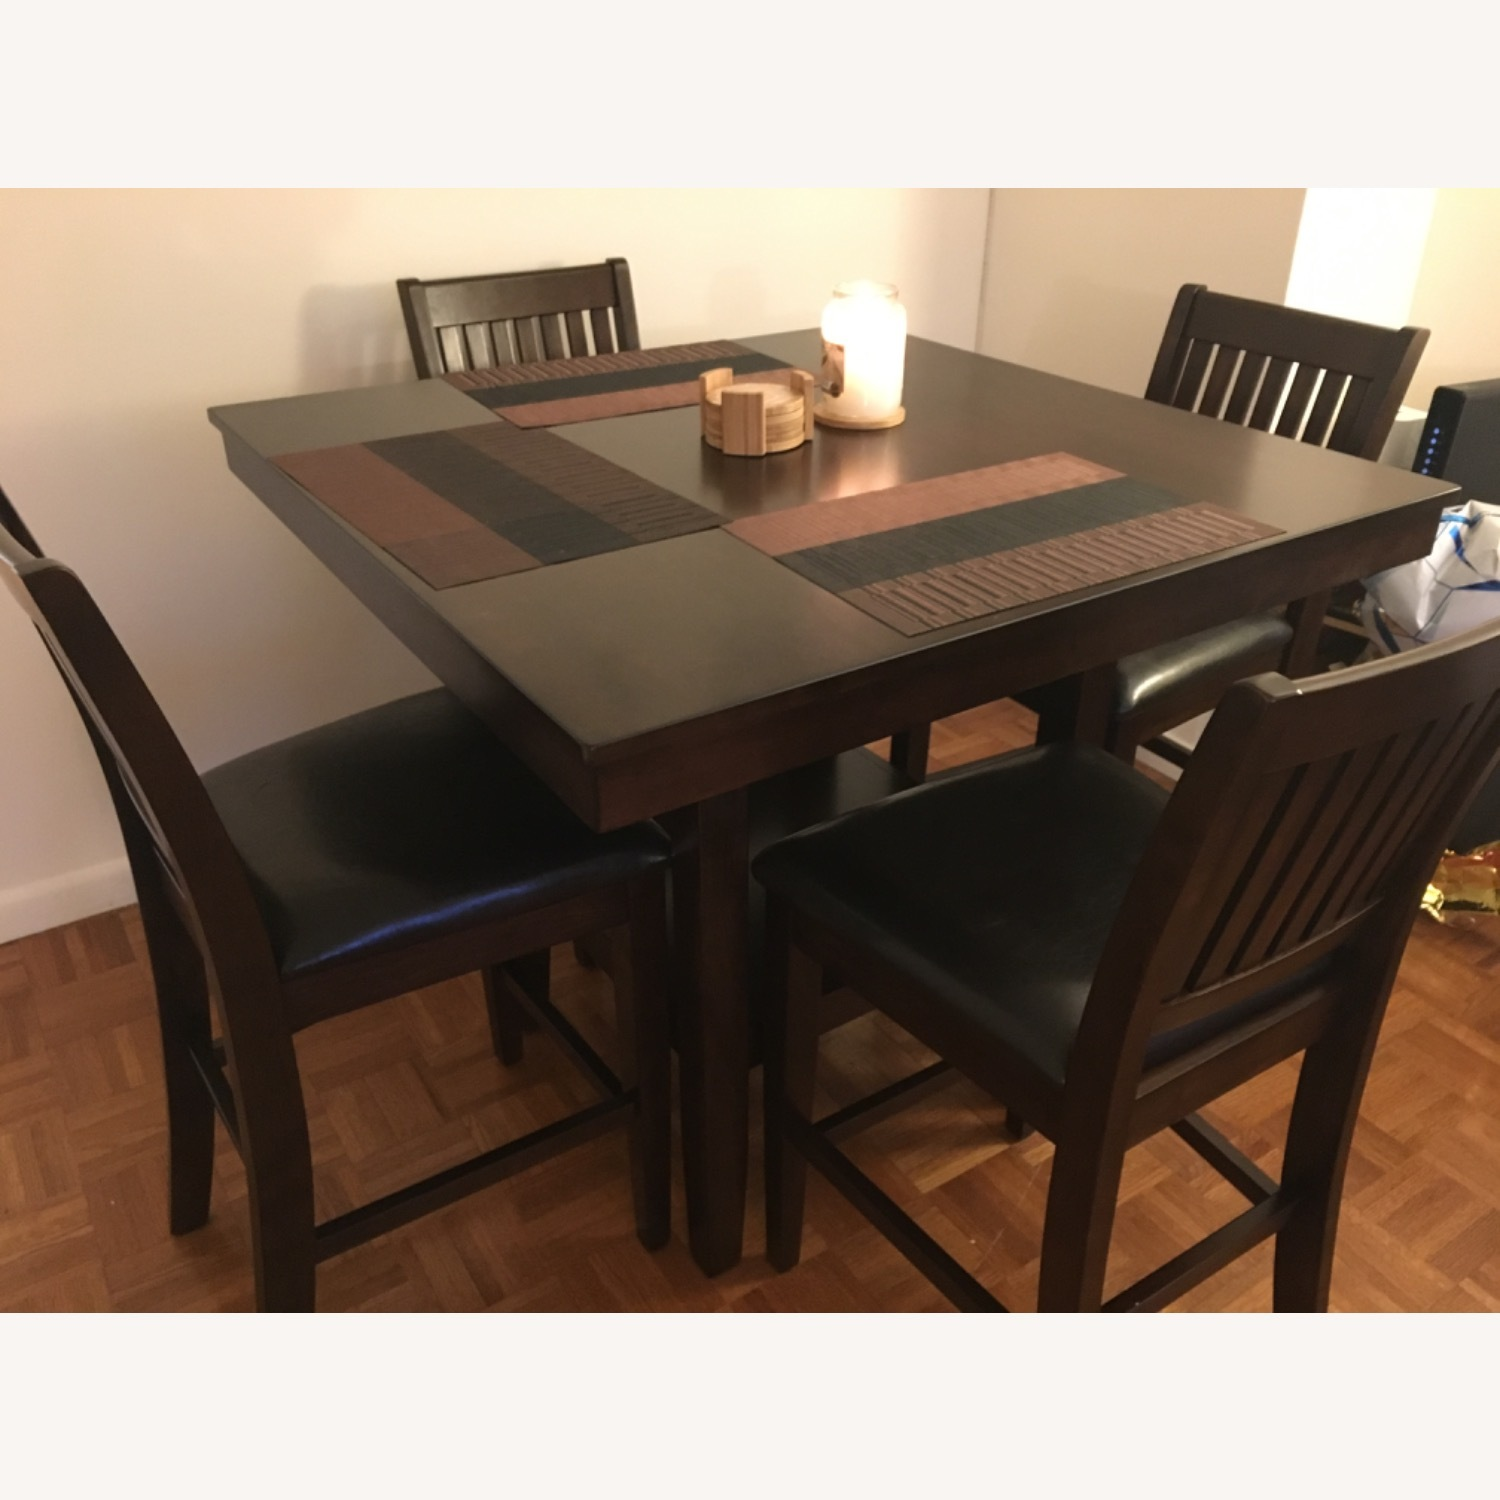 Wayfair 5 Piece Warm Cherry Dining Set - image-2